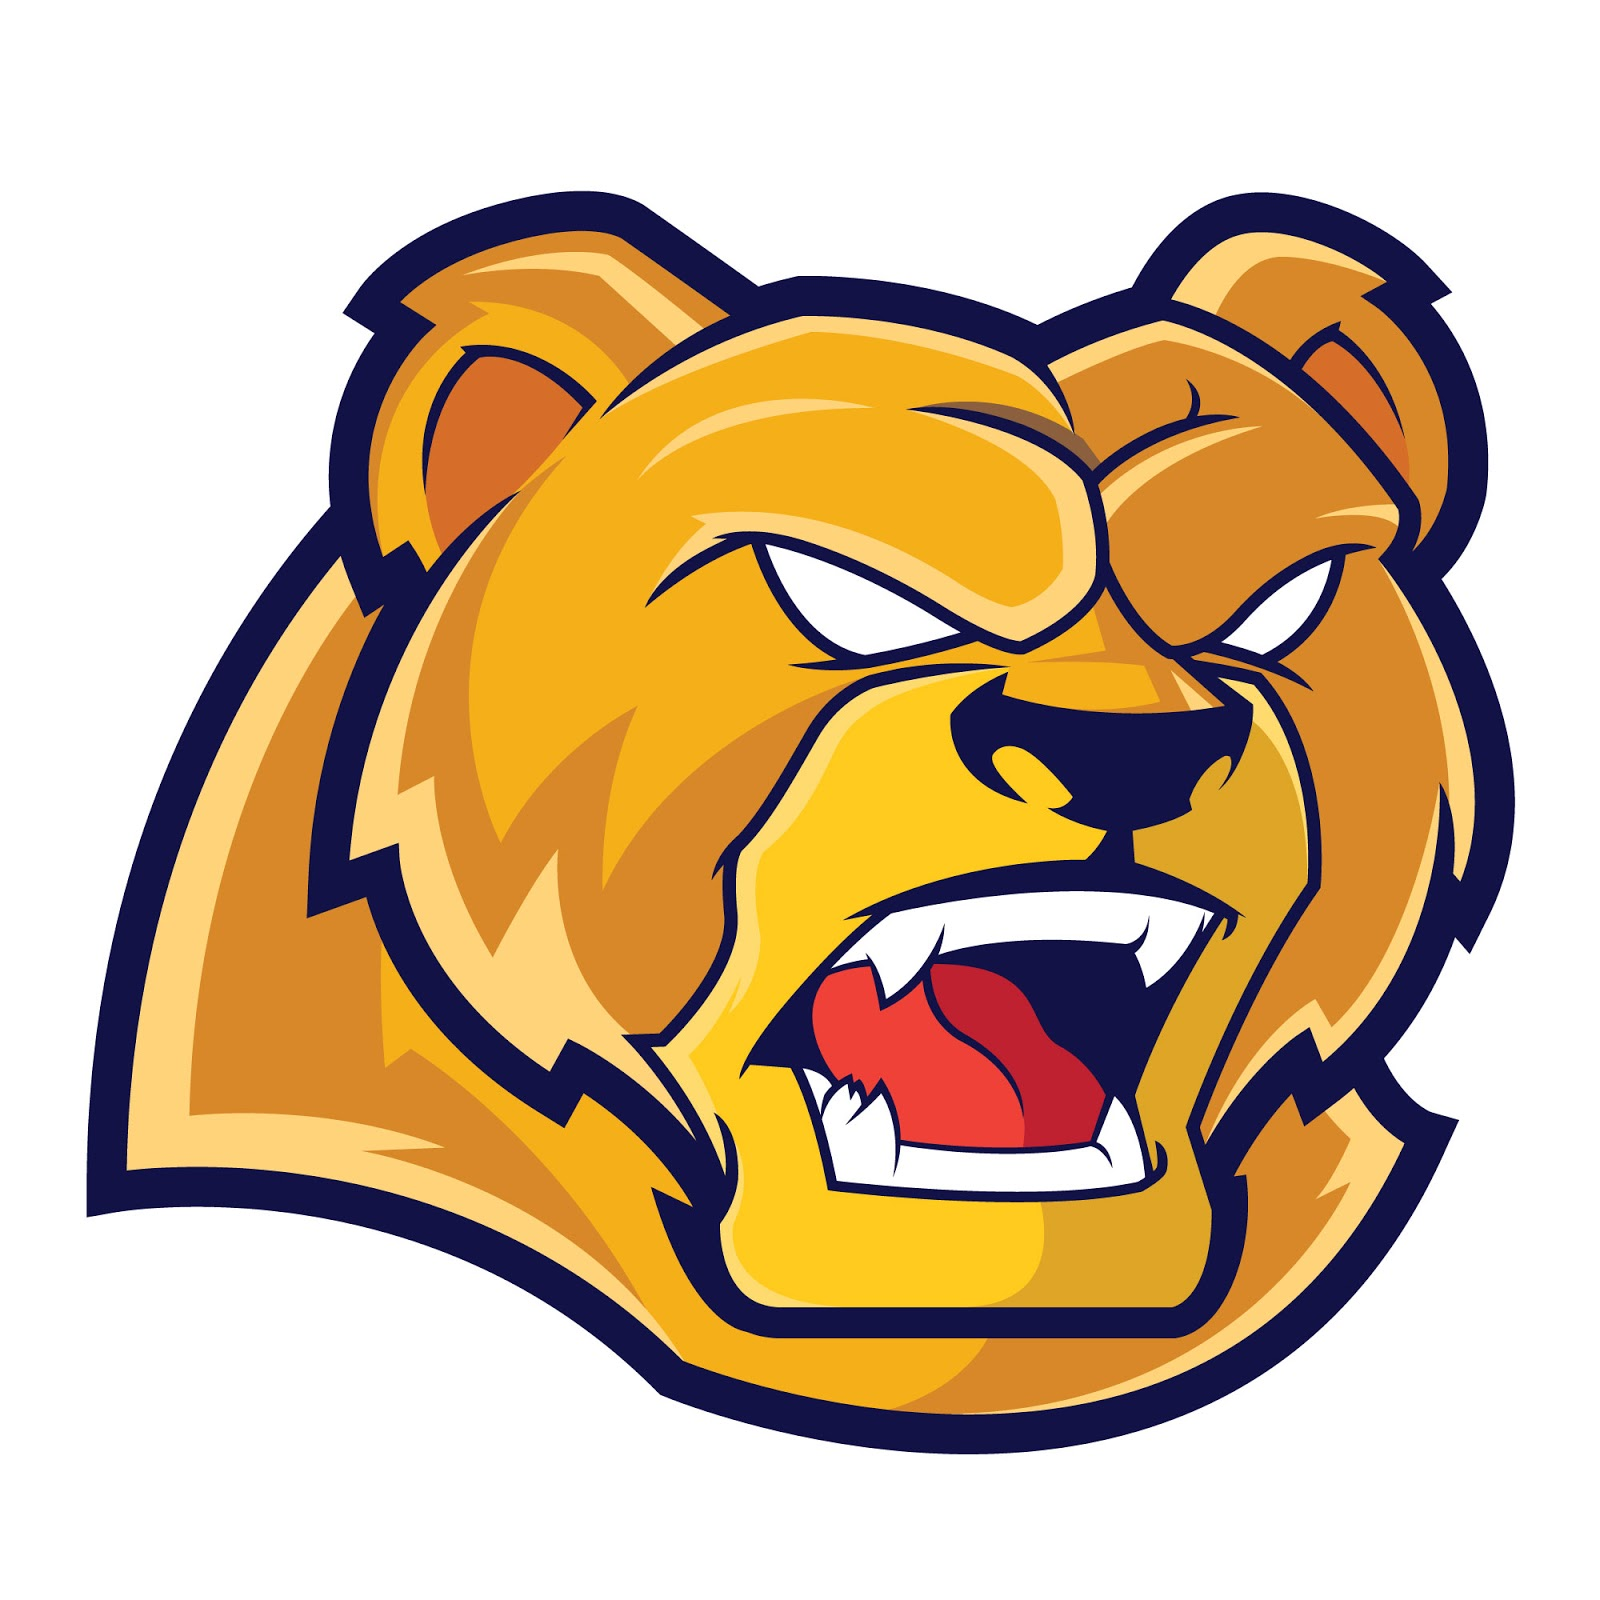 Grizzlies Sports Logo Free Download Vector CDR, AI, EPS and PNG Formats